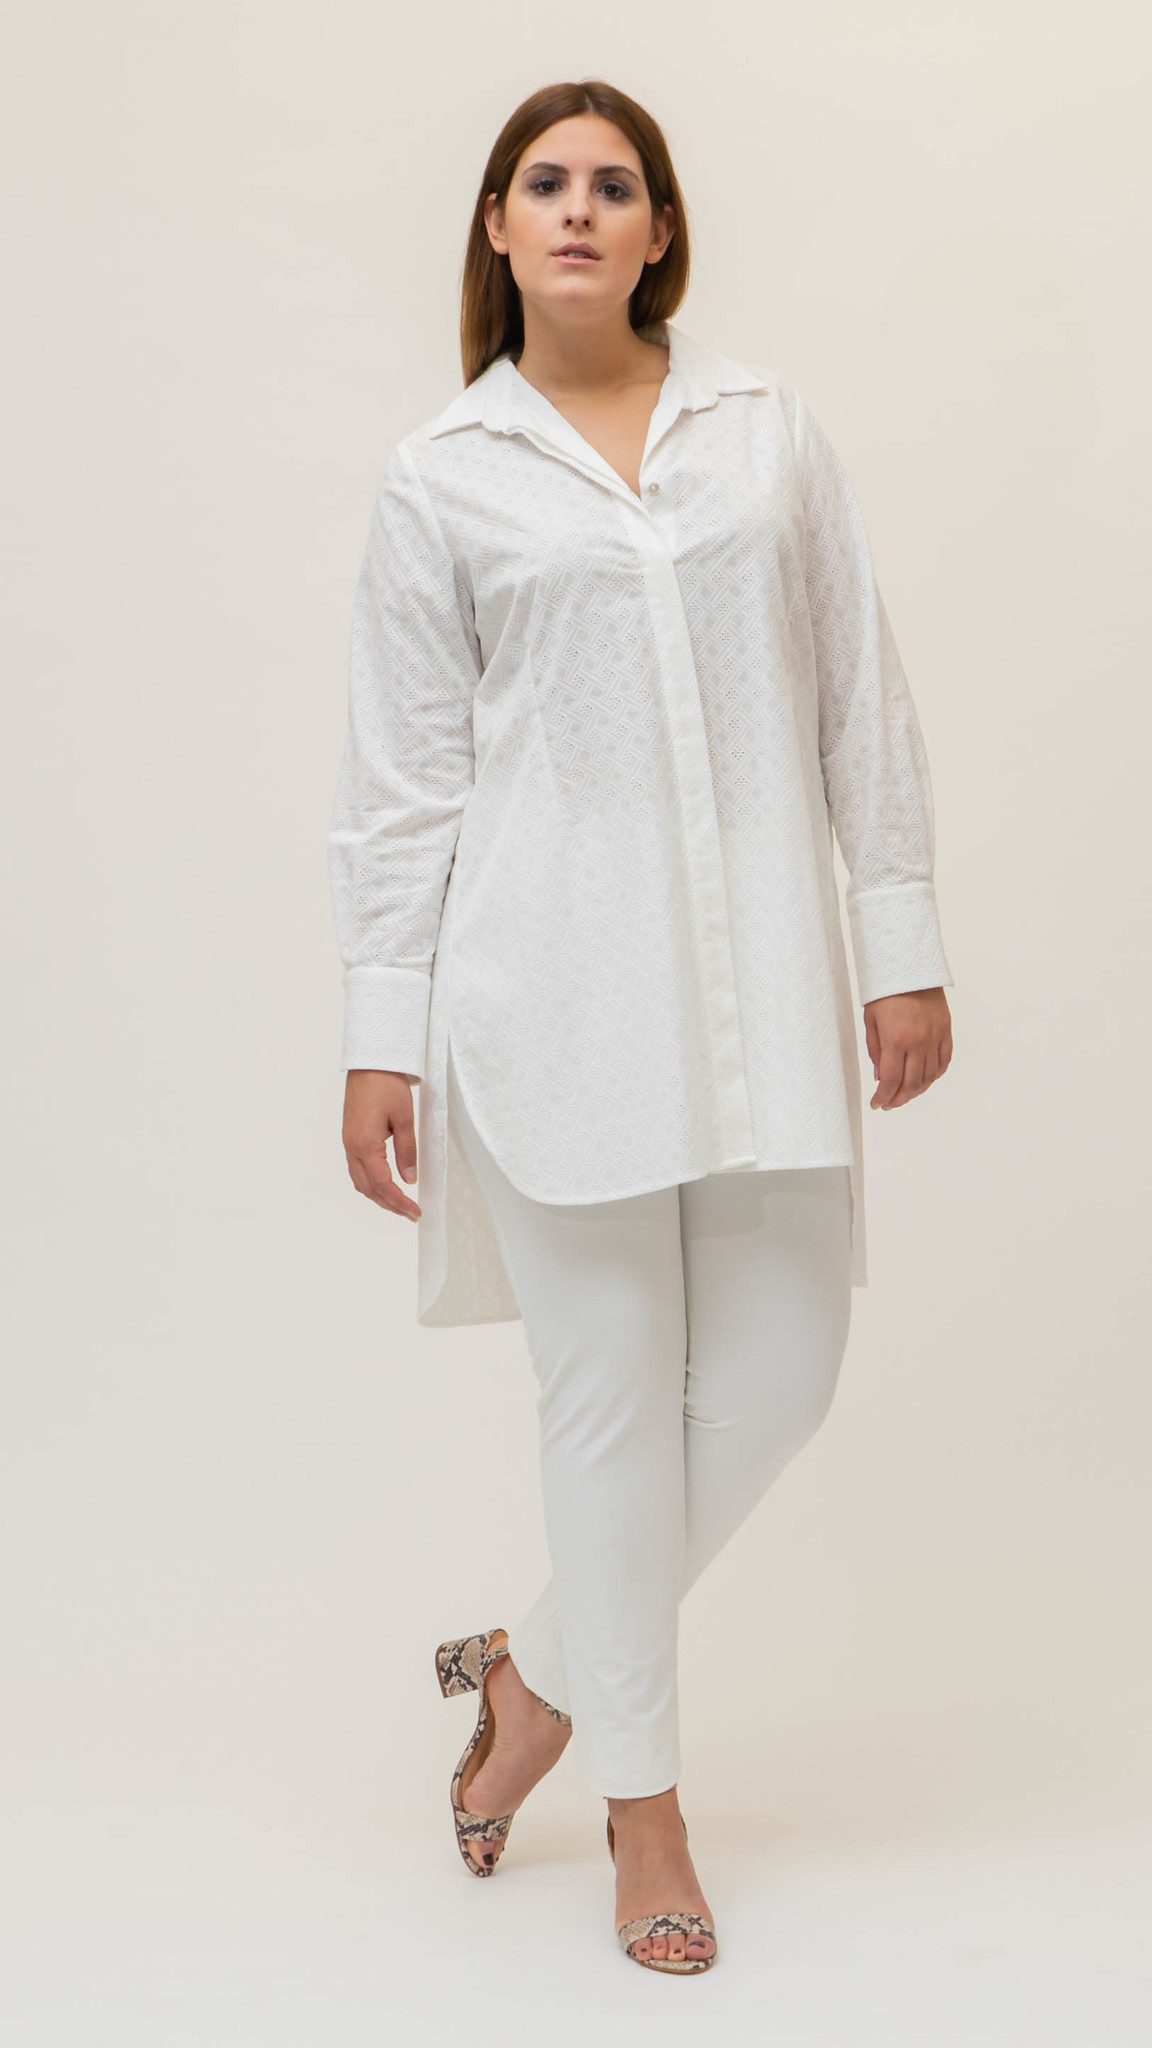 GALIT embroidered Blouse-1